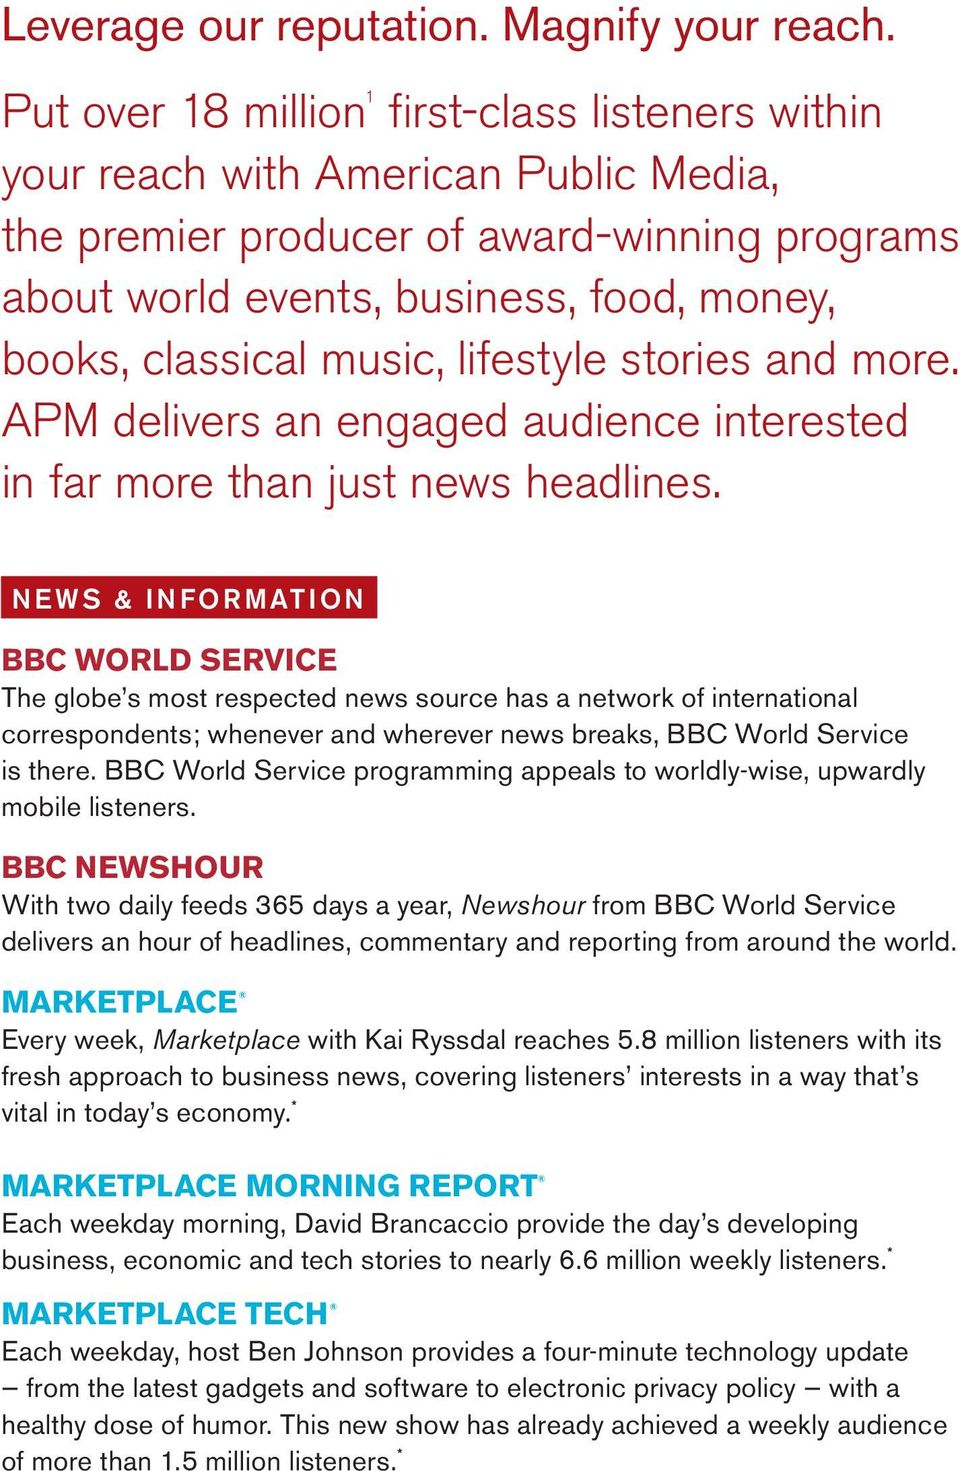 music, lifestyle stories and more. APM delivers an engaged audience interested in far more than just news headlines.